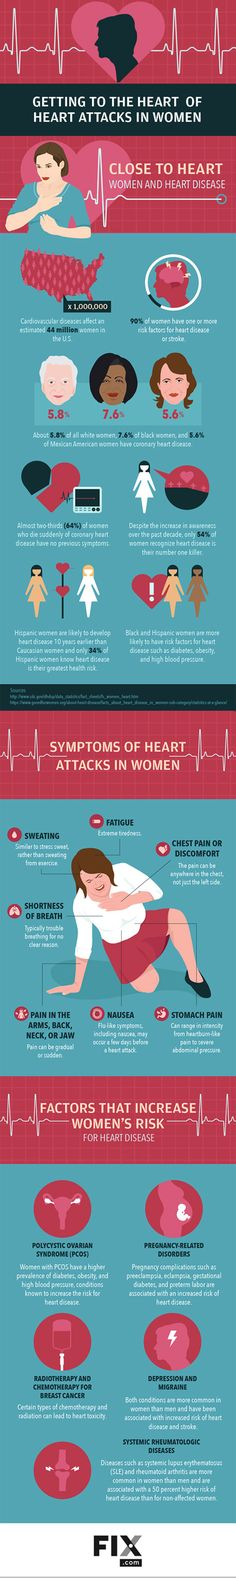 Learn all about the signs, symptoms, and specific risk factors women face with cardiovascular disease. # heart attack symptoms in women cardiovascular disease Getting to the Heart of Heart Attacks in Women Heart Symptoms, Heart Attack Symptoms, Disease Symptoms, Autoimmune Disease, Heart Diet, Heart Healthy Diet, Healthy Foods, Healthy Life, Healthy Recipes